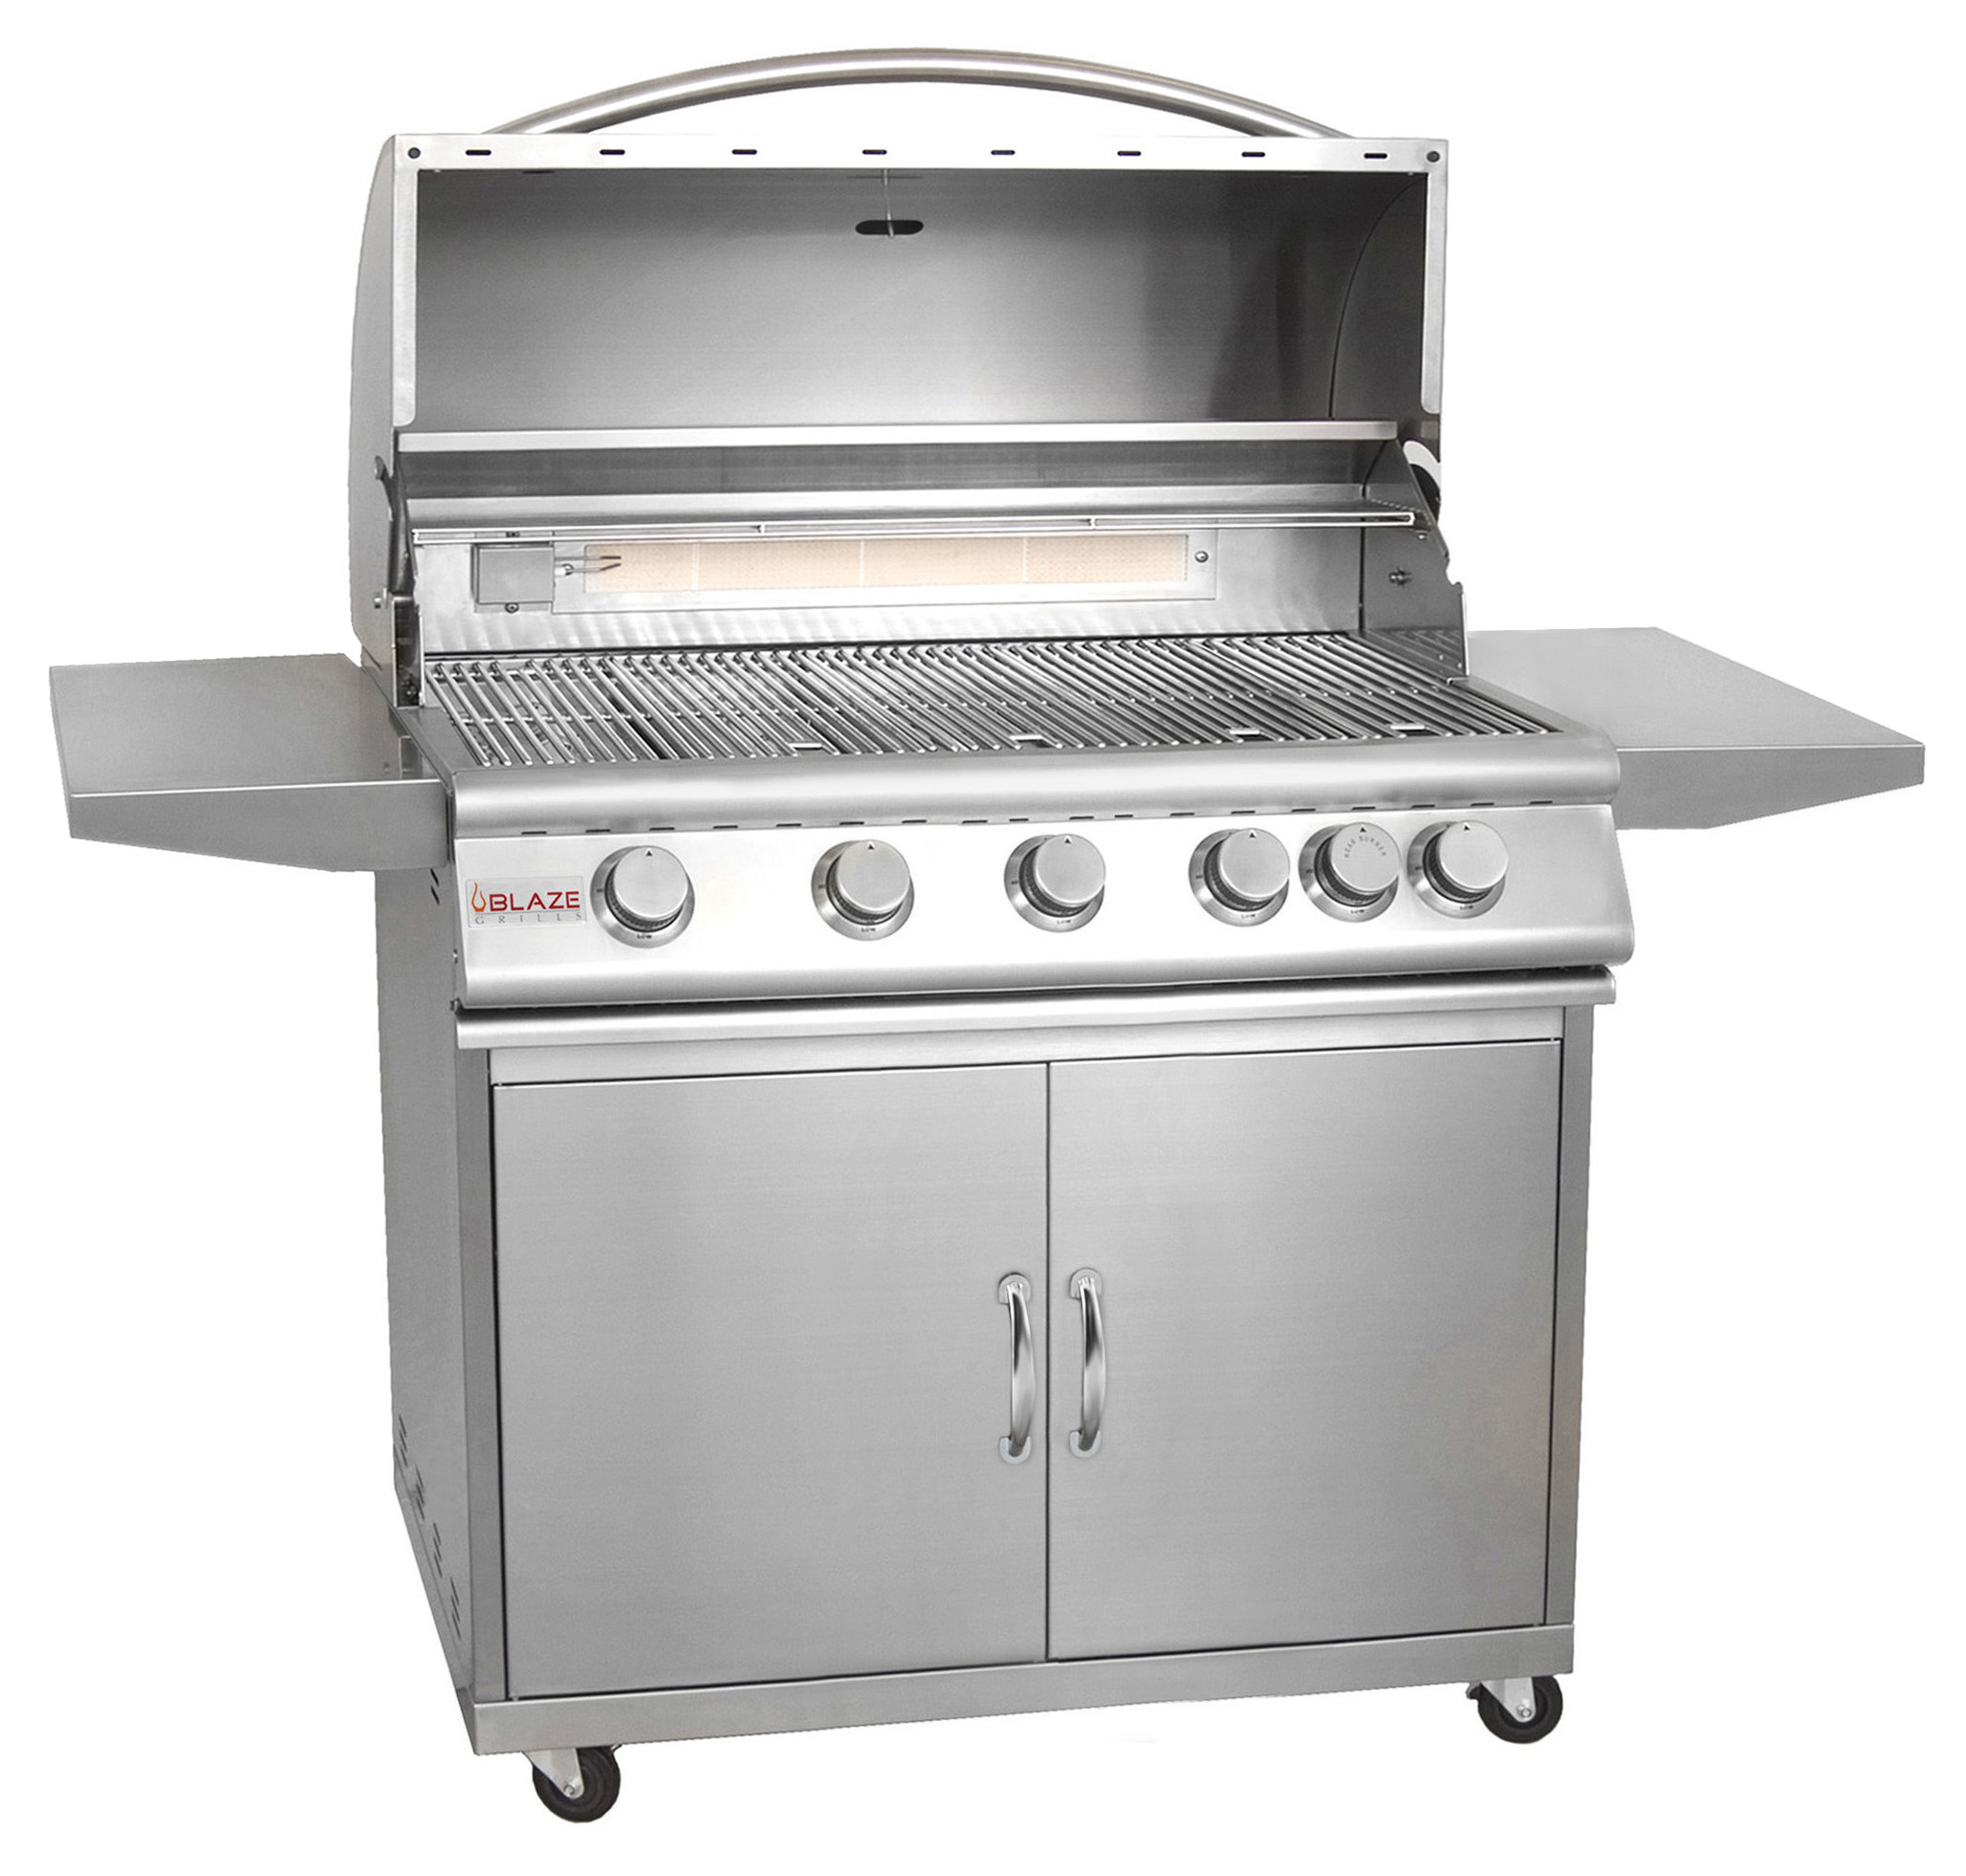 Outdoor Grill Blaze Outdoor Products 40